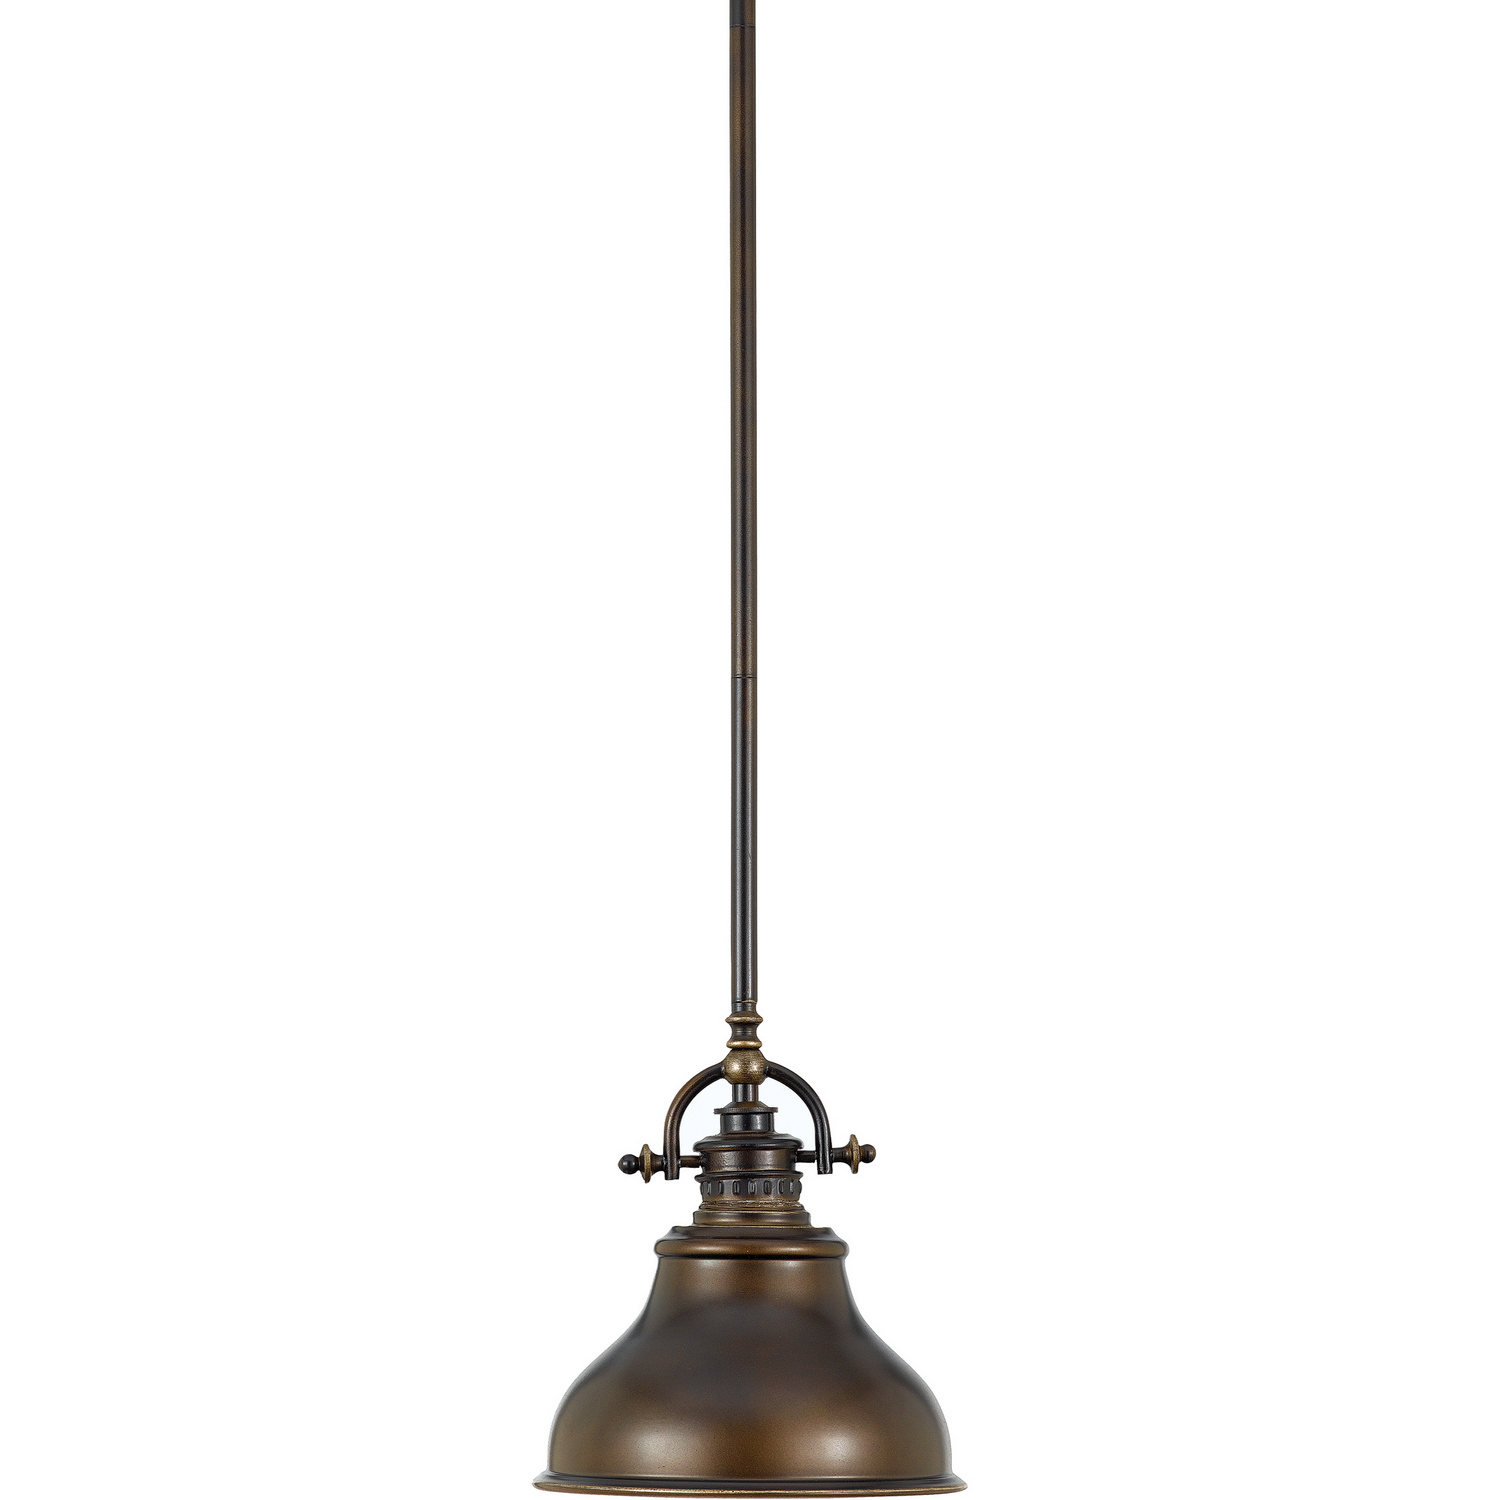 Craftsman style pendant lighting reviewsprices quoizel emery pendants mozeypictures Image collections